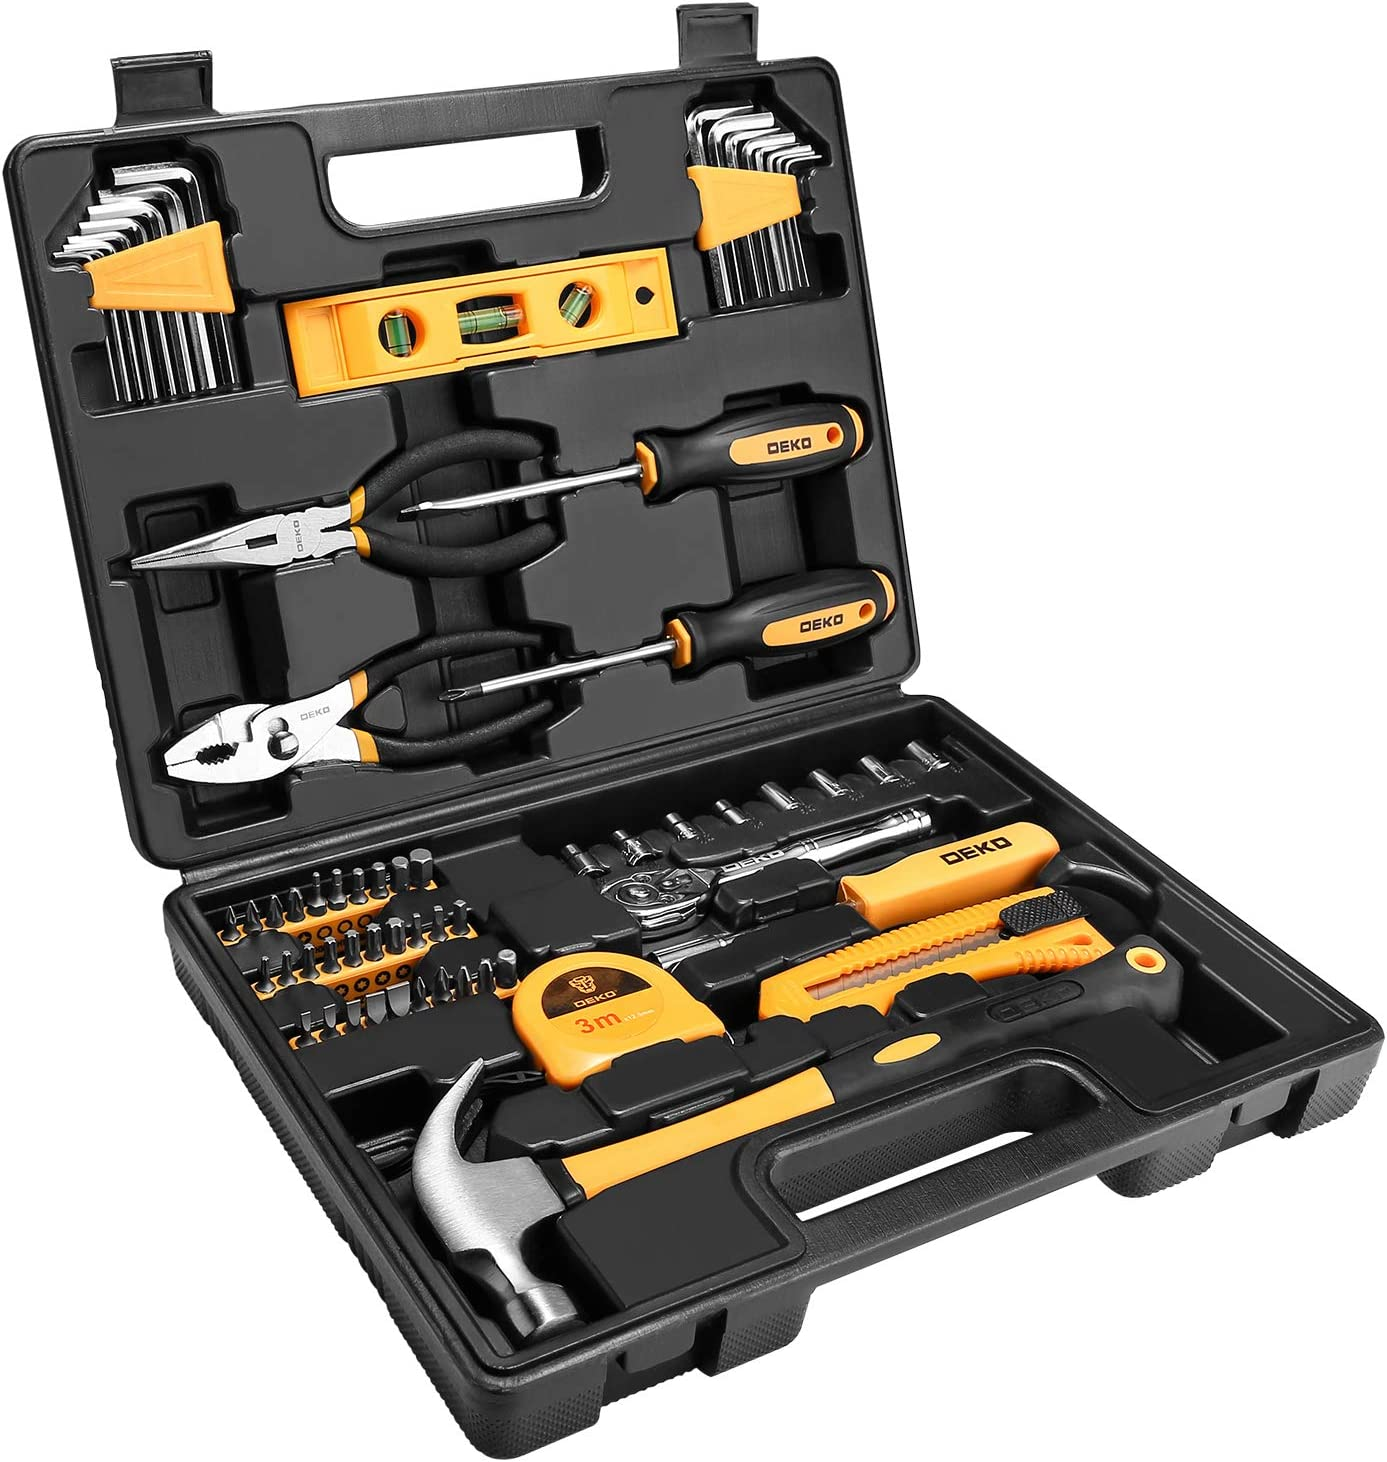 DEKOPRO 65 Piece Tool Set General Household Hand Tool Kit with Plastic ToolBox Storage Case